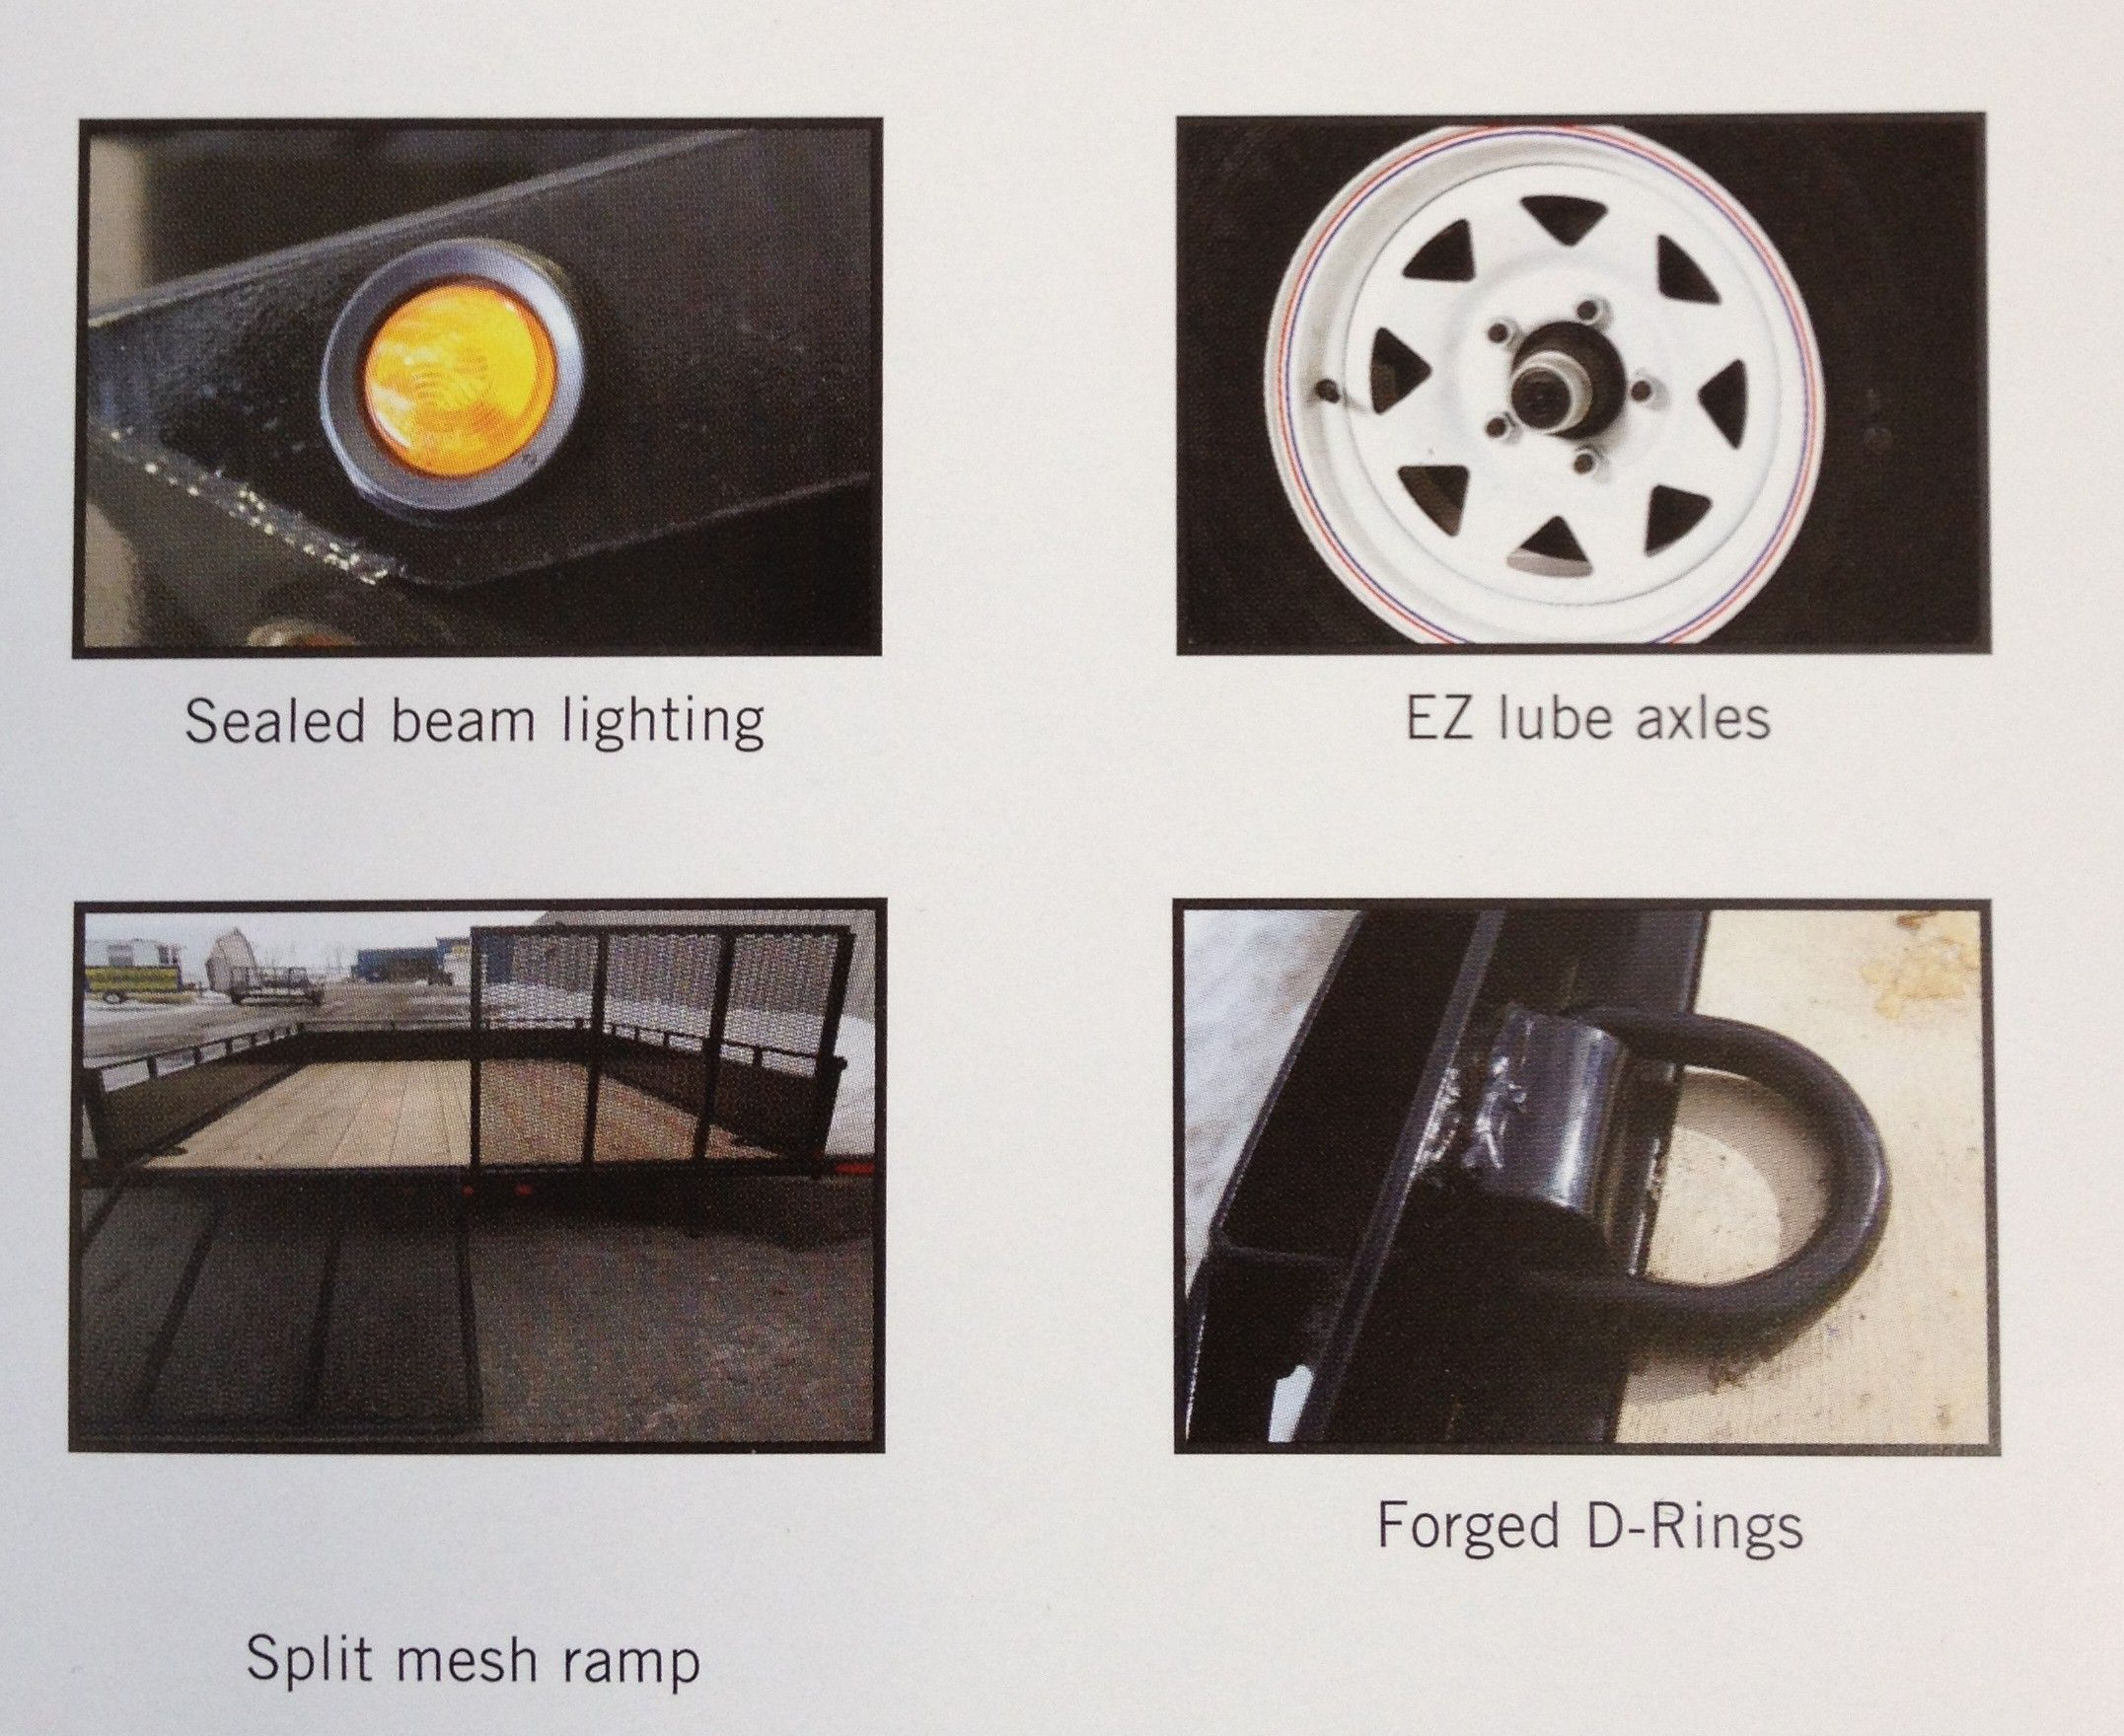 sealed beam lighting, EZ lube axles, split mesh ramp, forged D rings